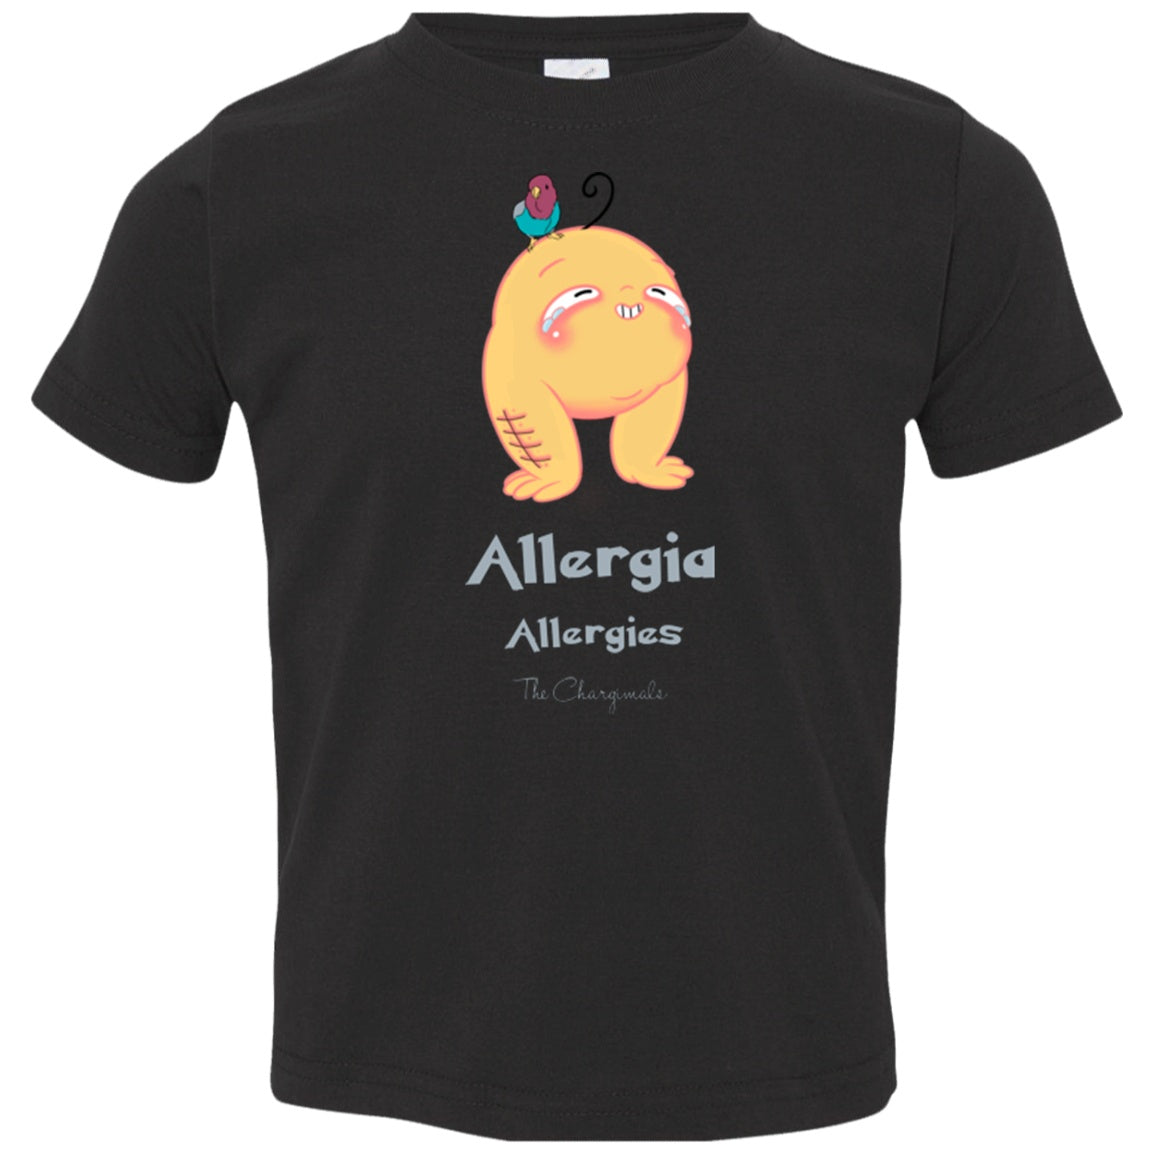 Ally the Allergy Monster Youth and Kids Shirts and Hoodies - The Unchargeables